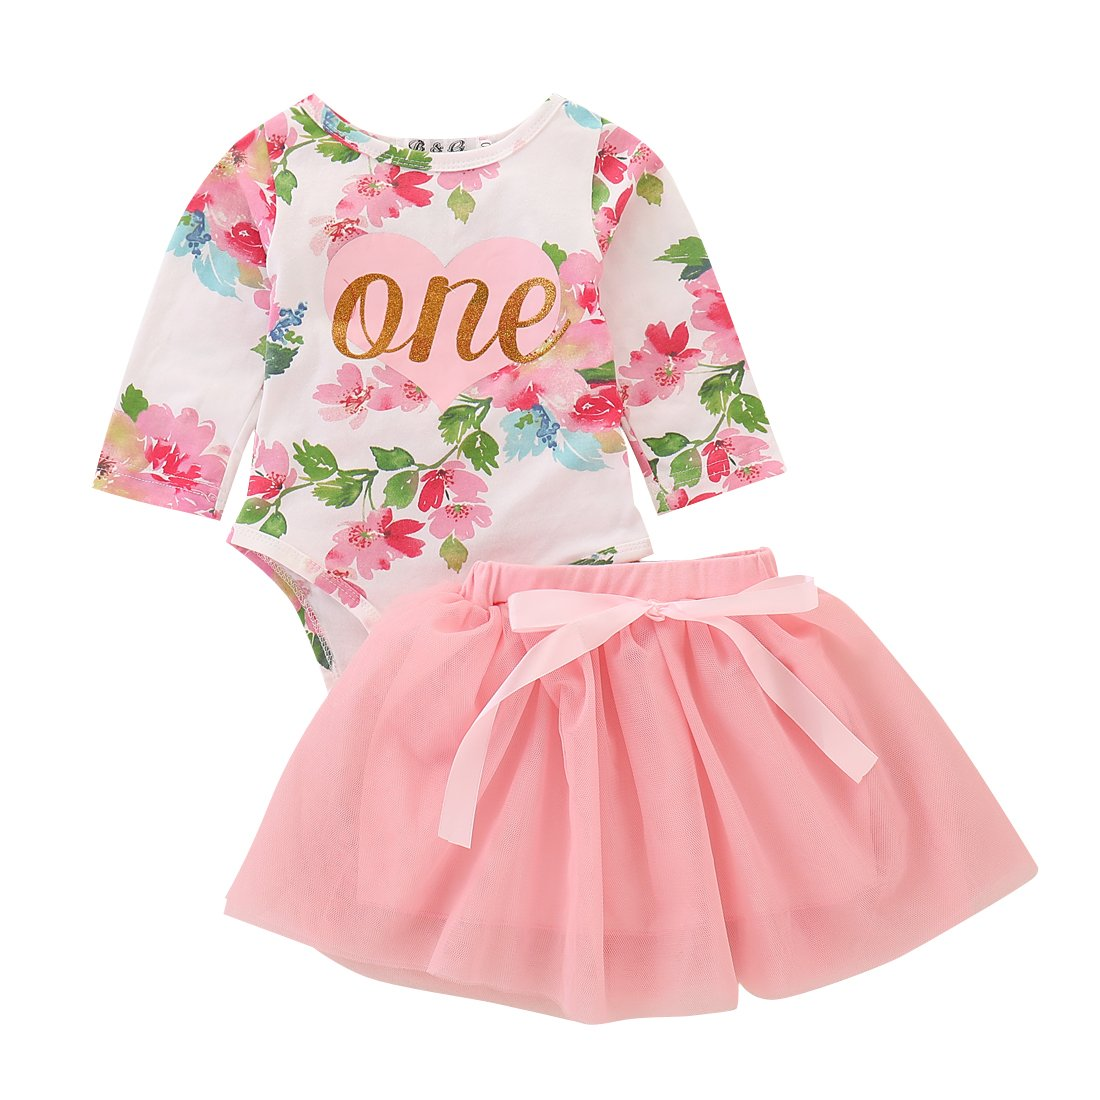 aadf8bd8dc34 Galleon - Toddler Baby Clothes 1st Birthday Tutu Dress Long Sleeve Floral  Romper Top Lace Skirt Outfits 2PCS (0-6 Months